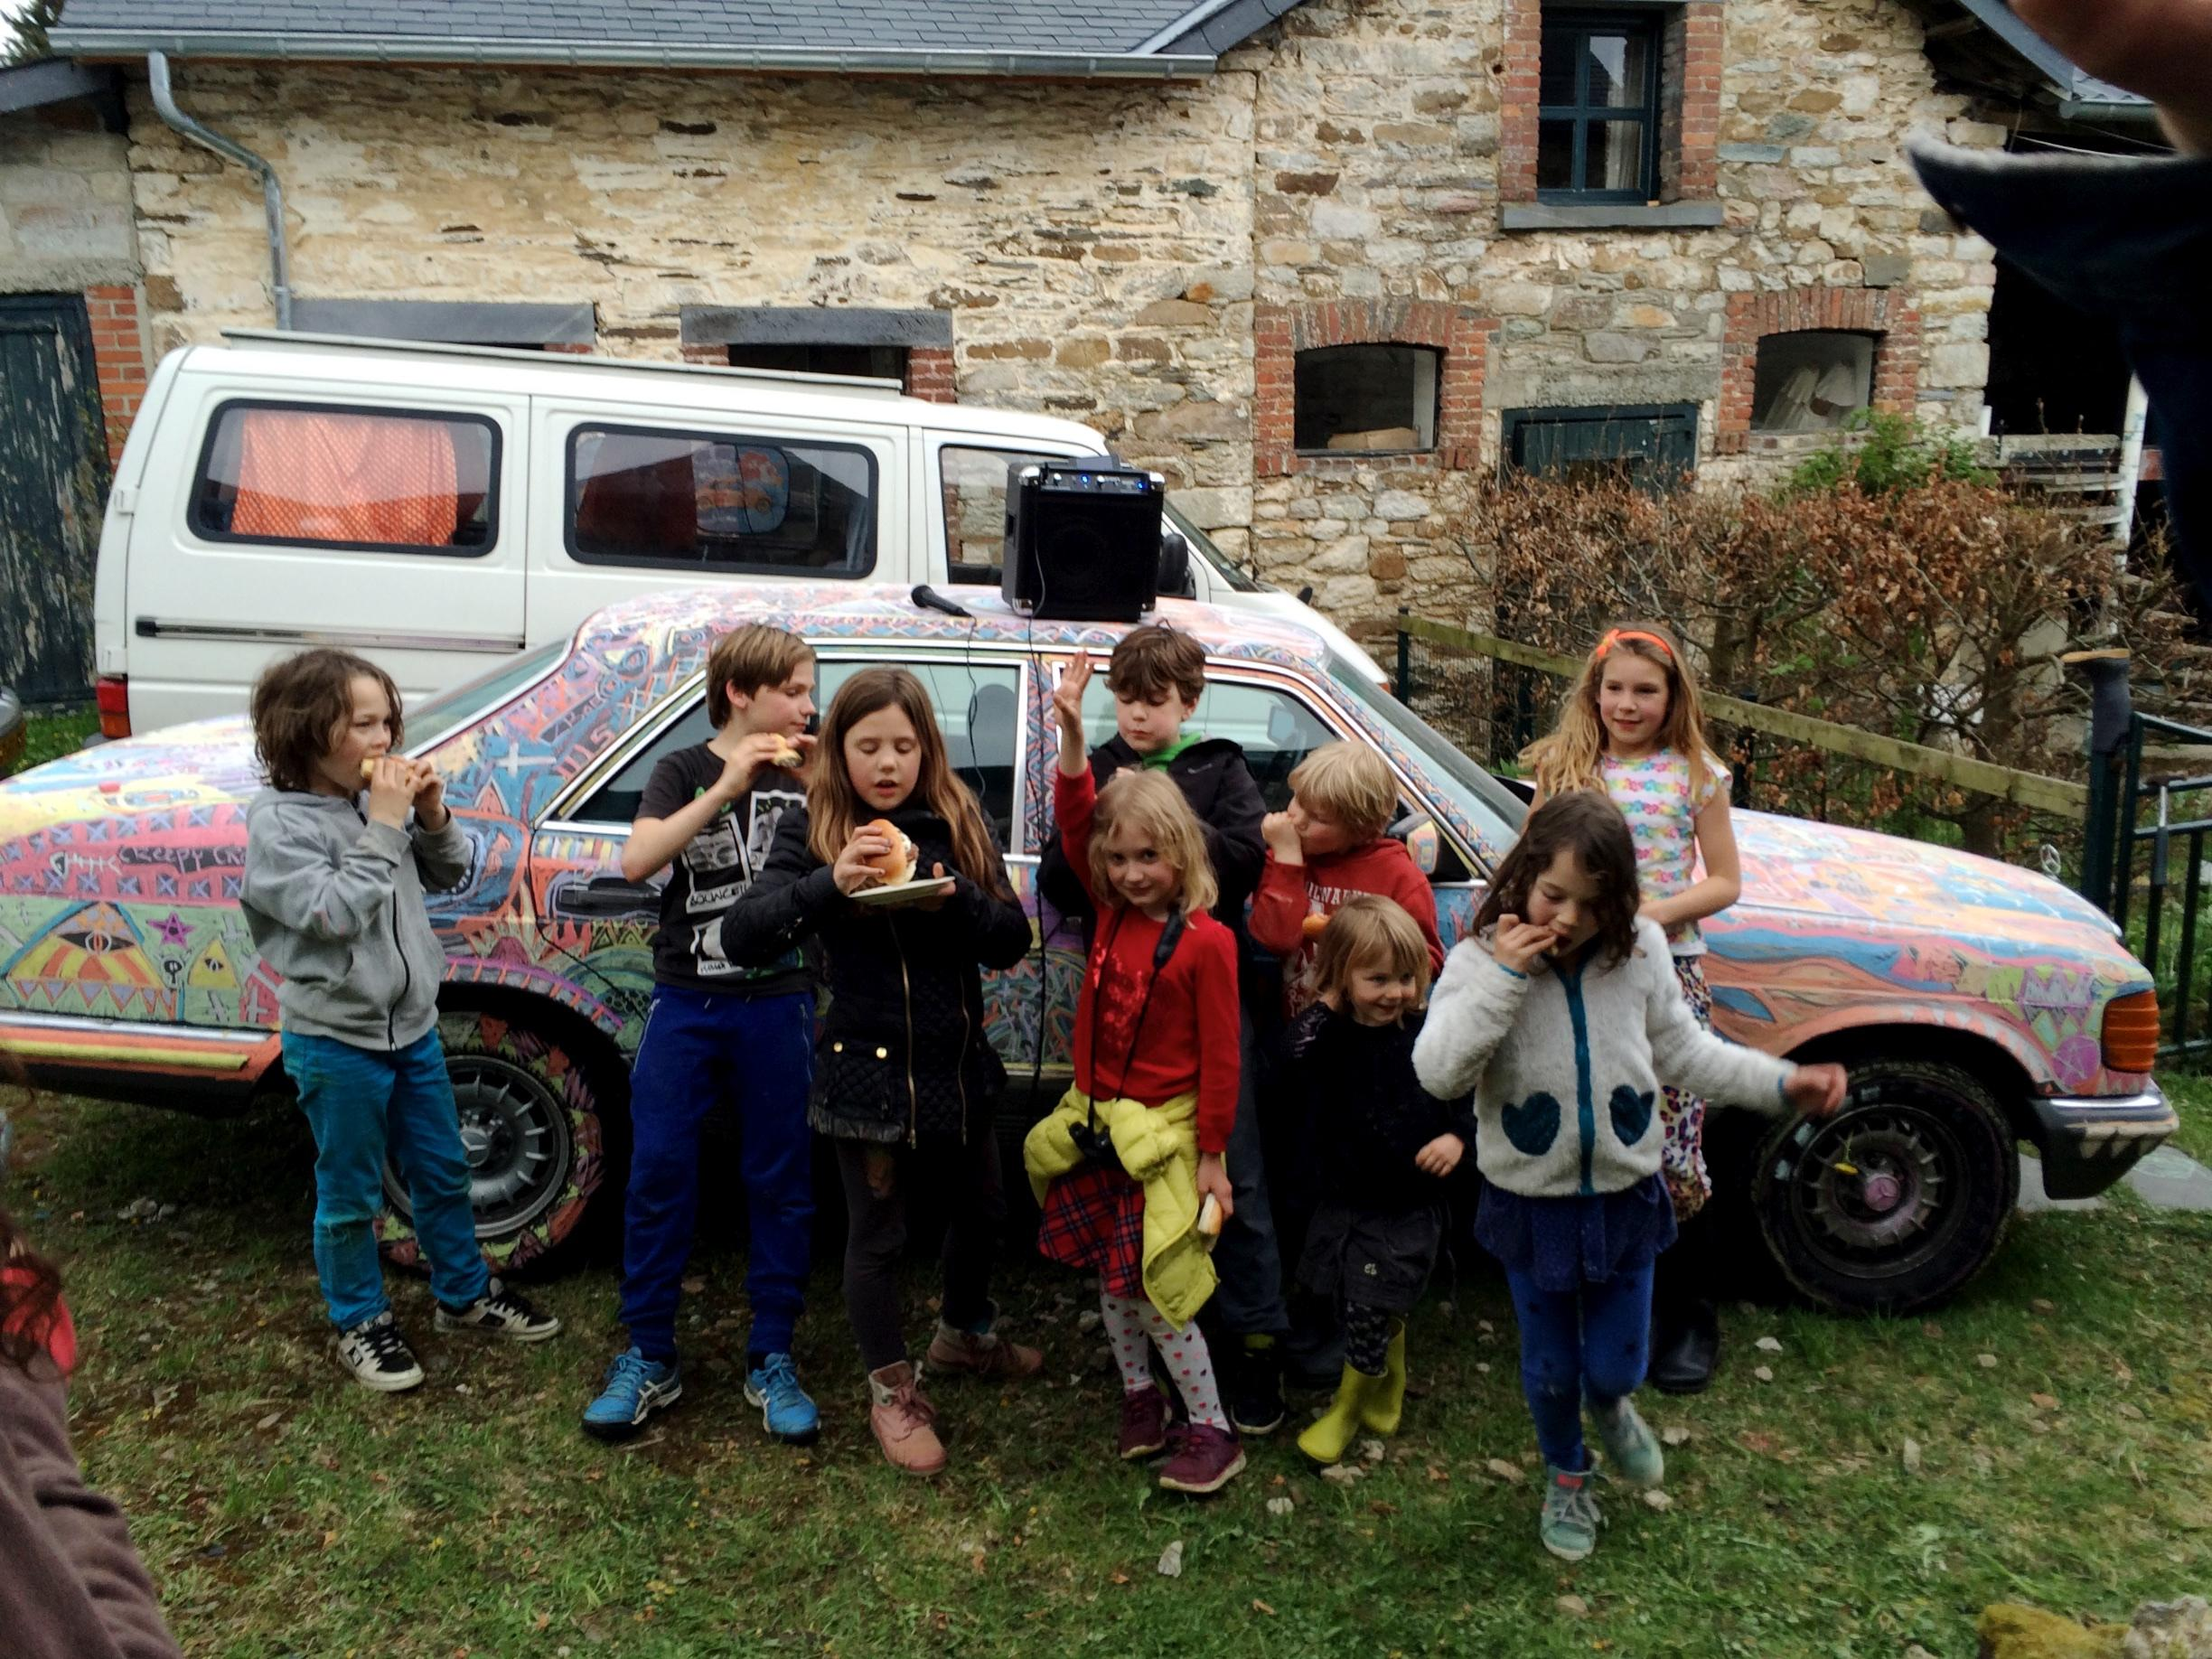 Happy kids who, of course, now understand that you can draw on cars, despite what grown ups may say